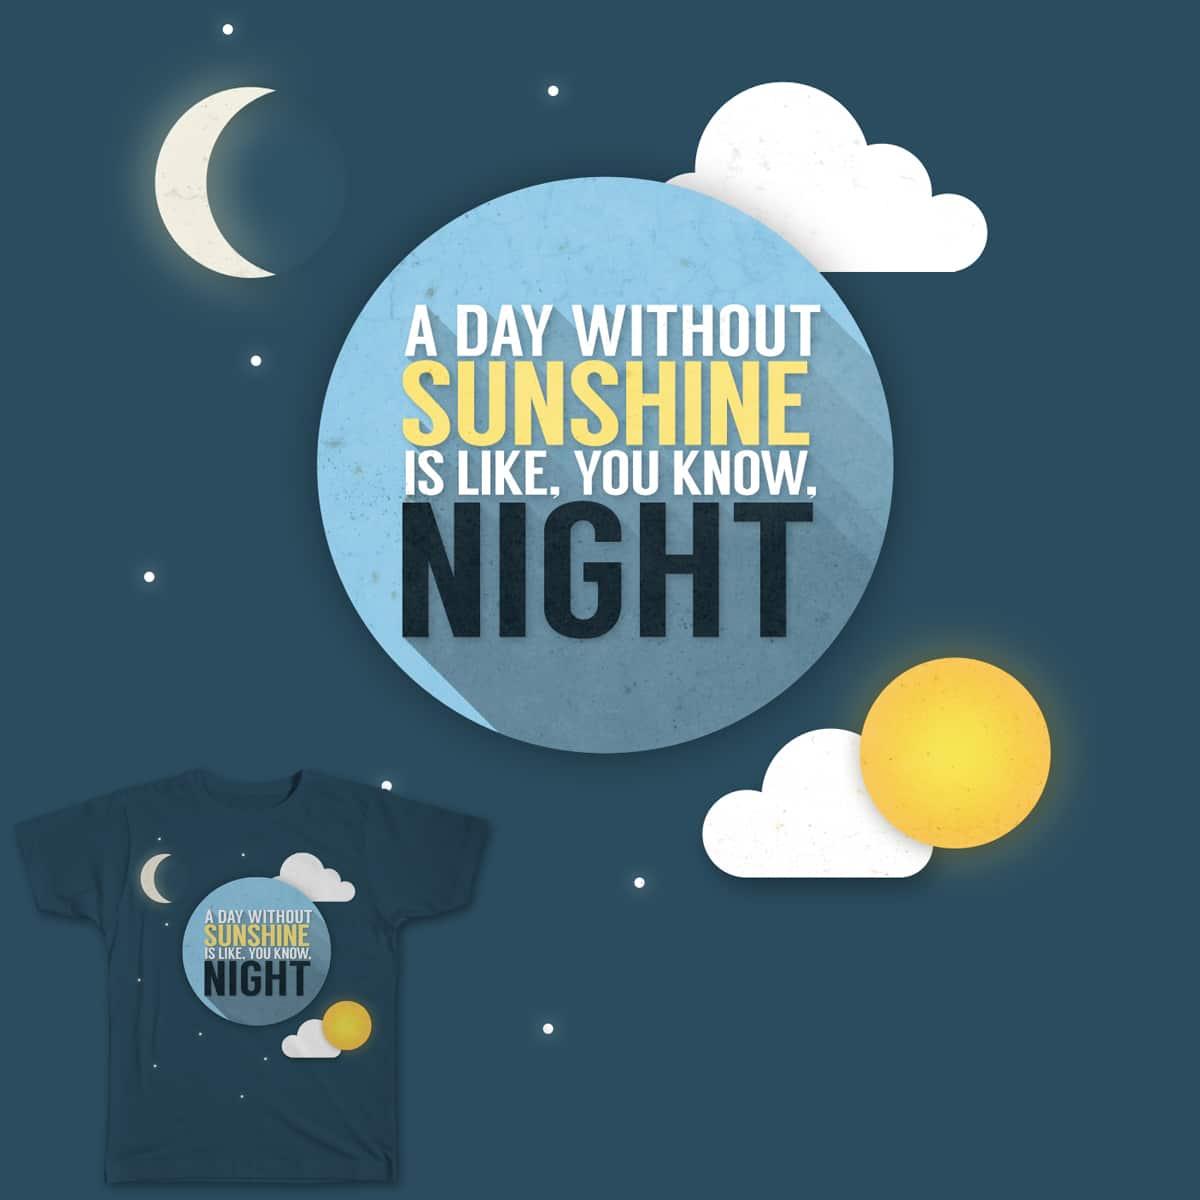 A Day Without Sunshine by Icphoton on Threadless